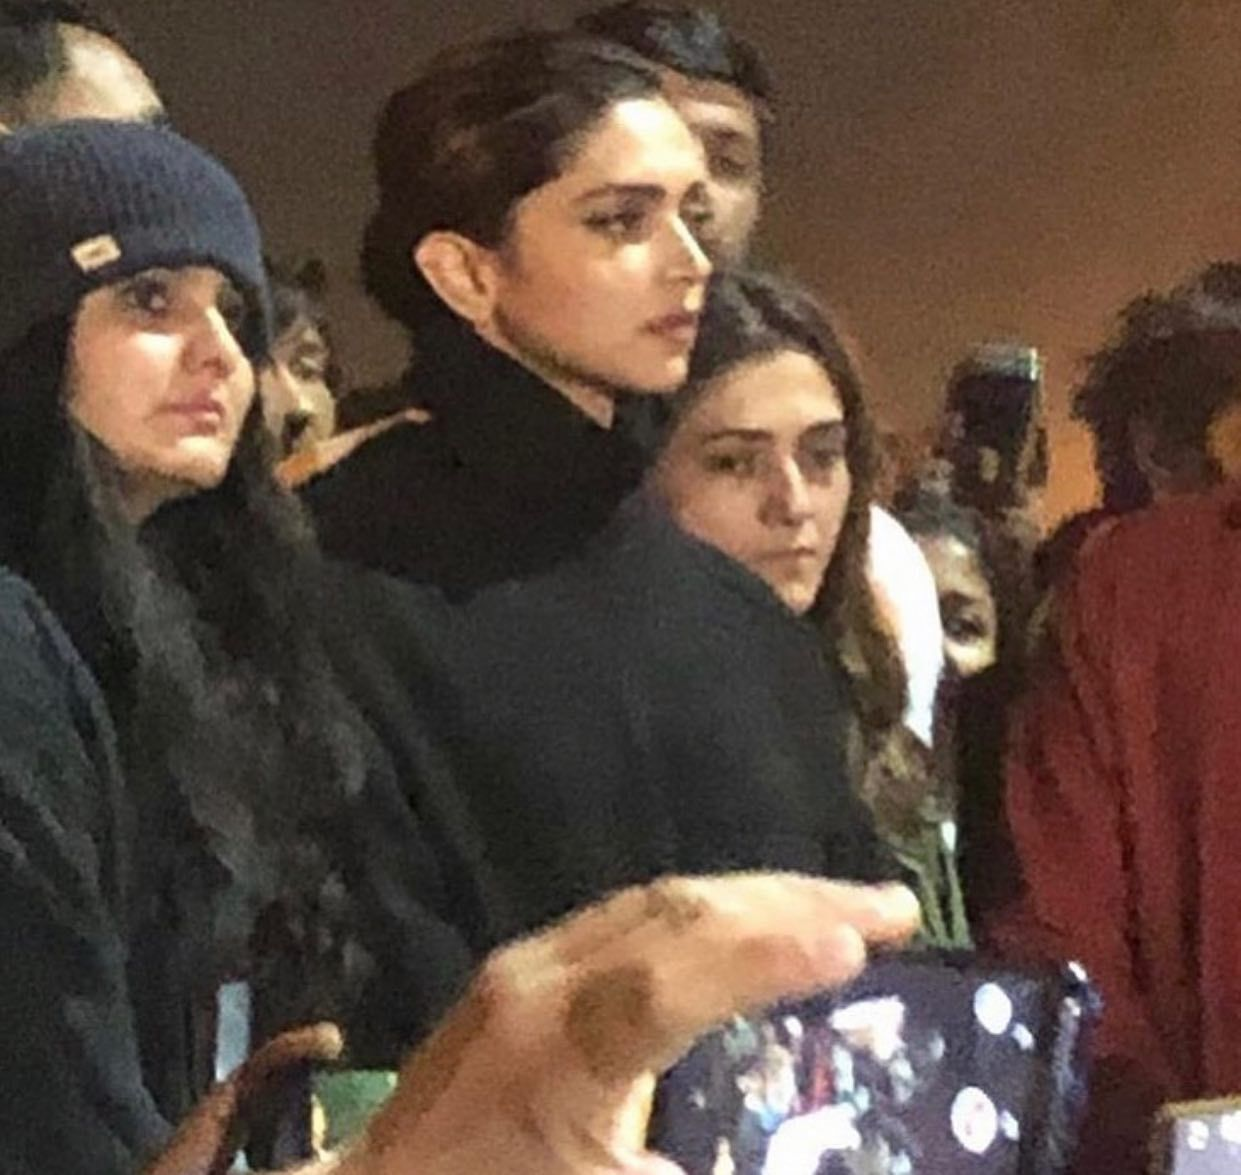 Deepika Padukone Comes Out In Solidarity With The Jnu Attack Victims The Actress Was Spotted At A Peaceful Protest Today Filmfare Masala Masalama In 2020